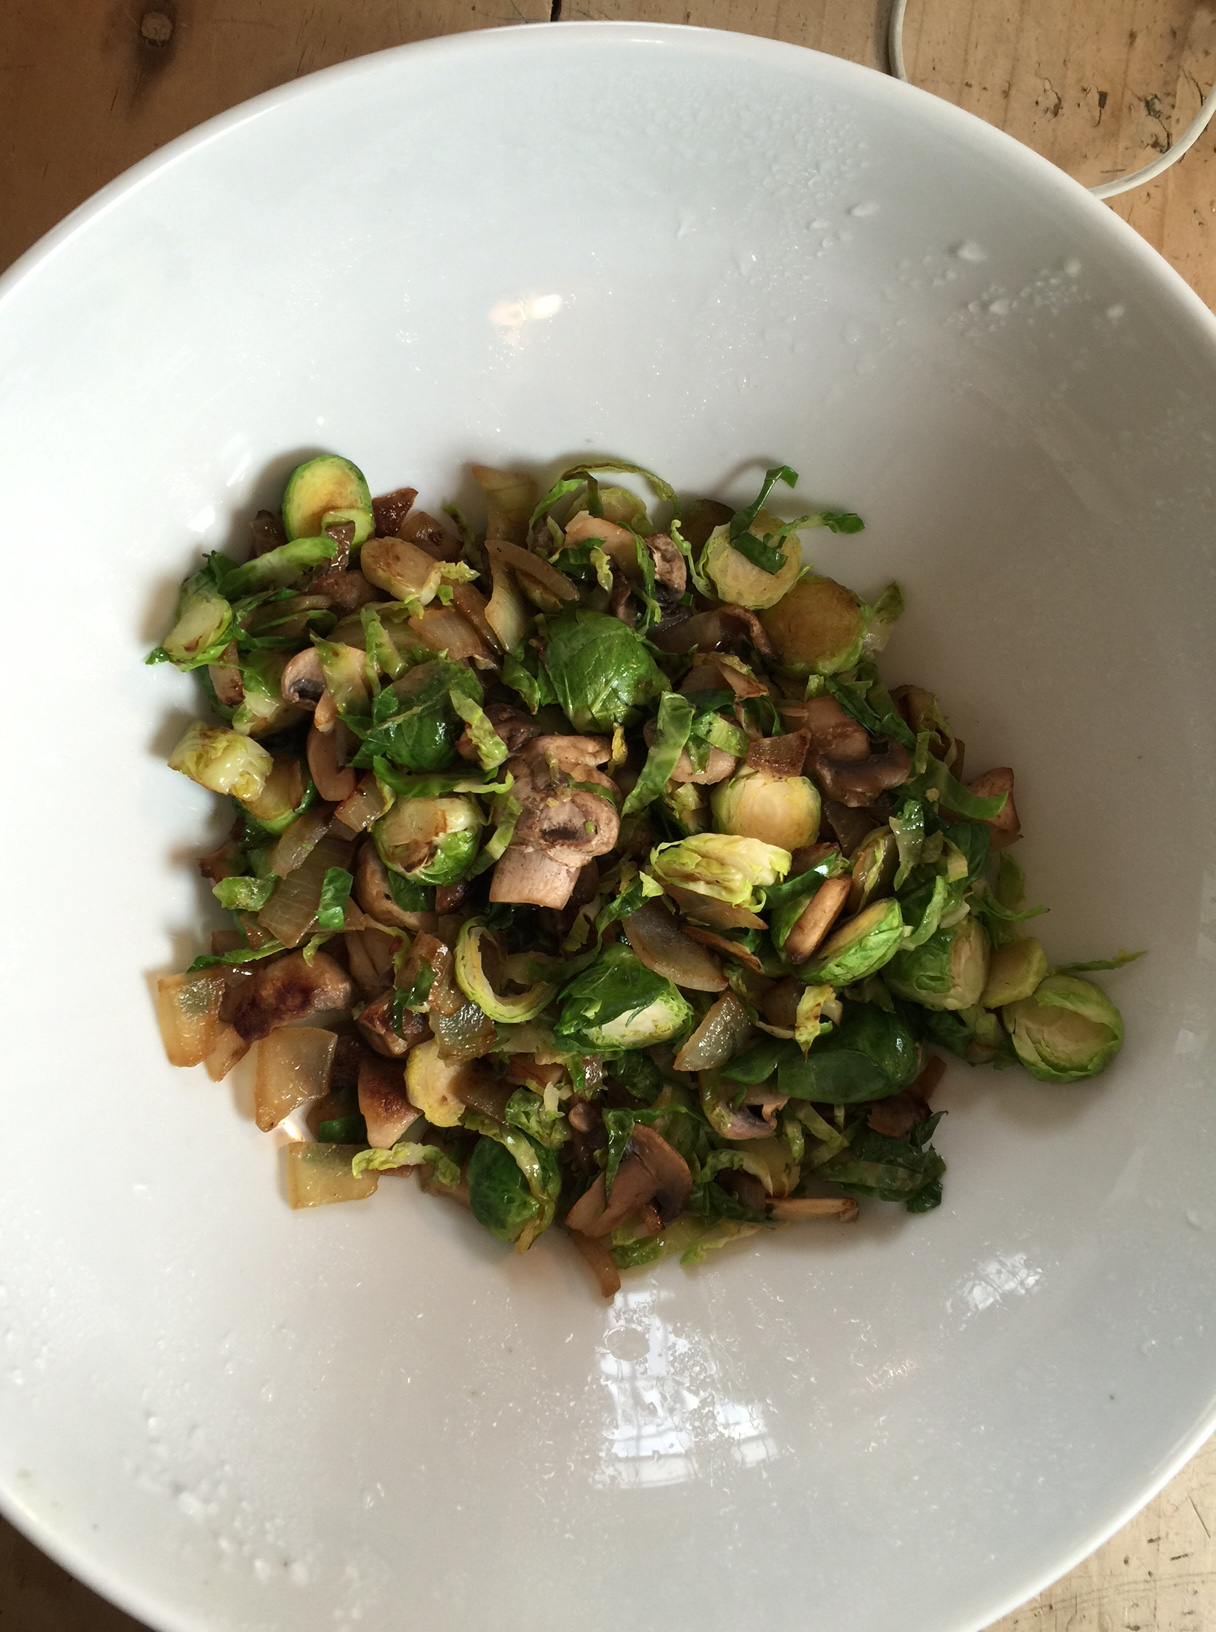 Stir fried Brussels sprouts mushroom and onions